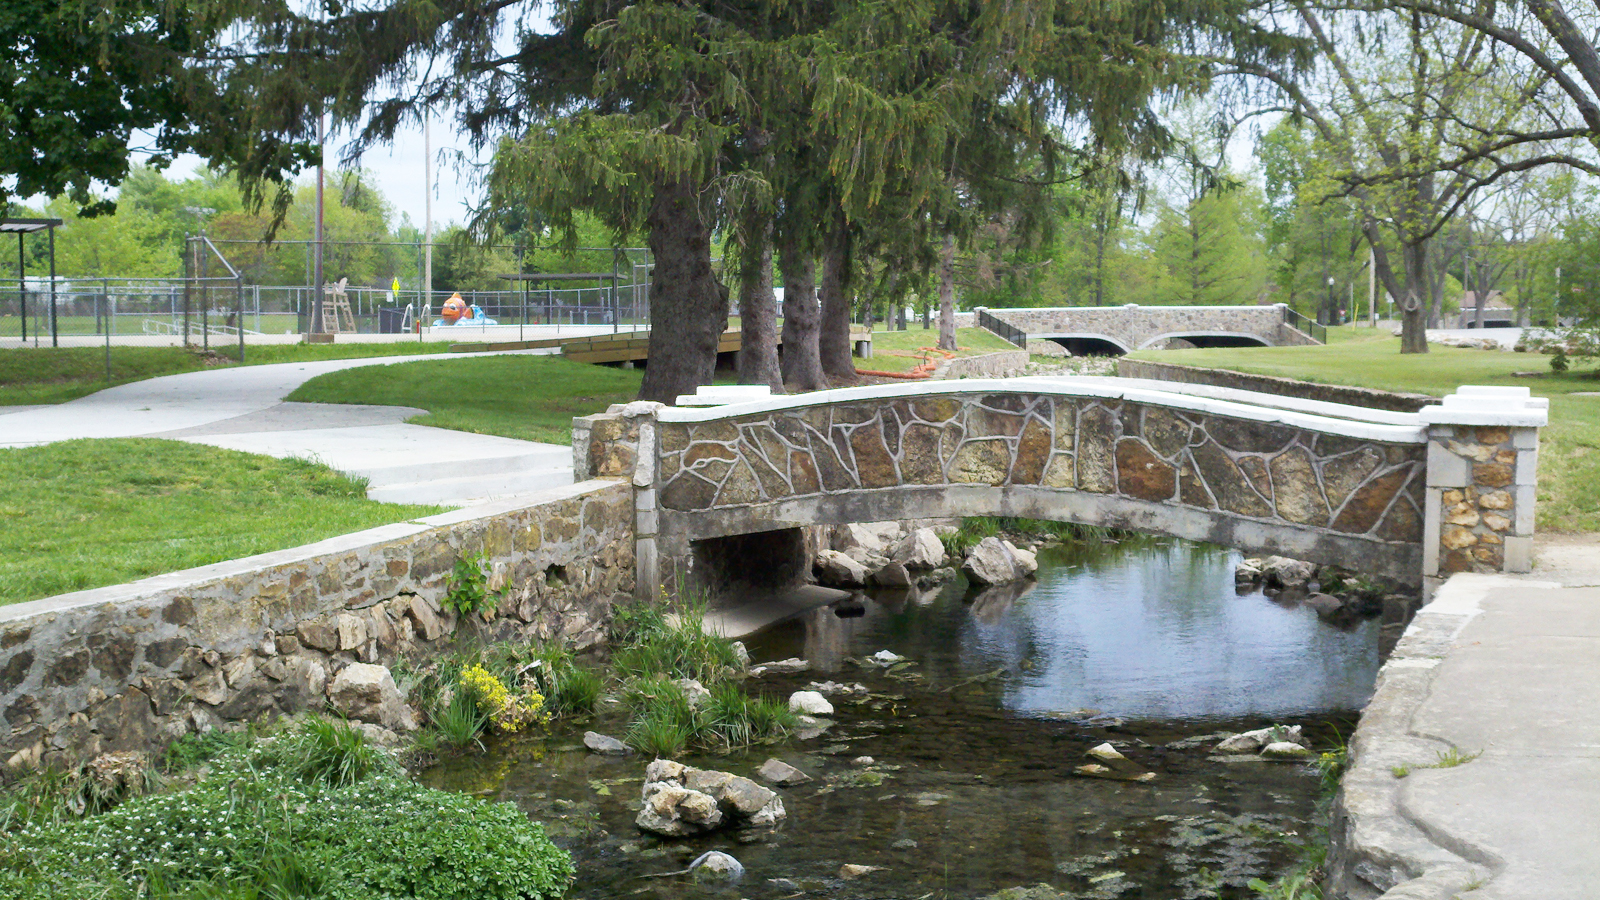 Park Stormwater Improvements and Flood Control